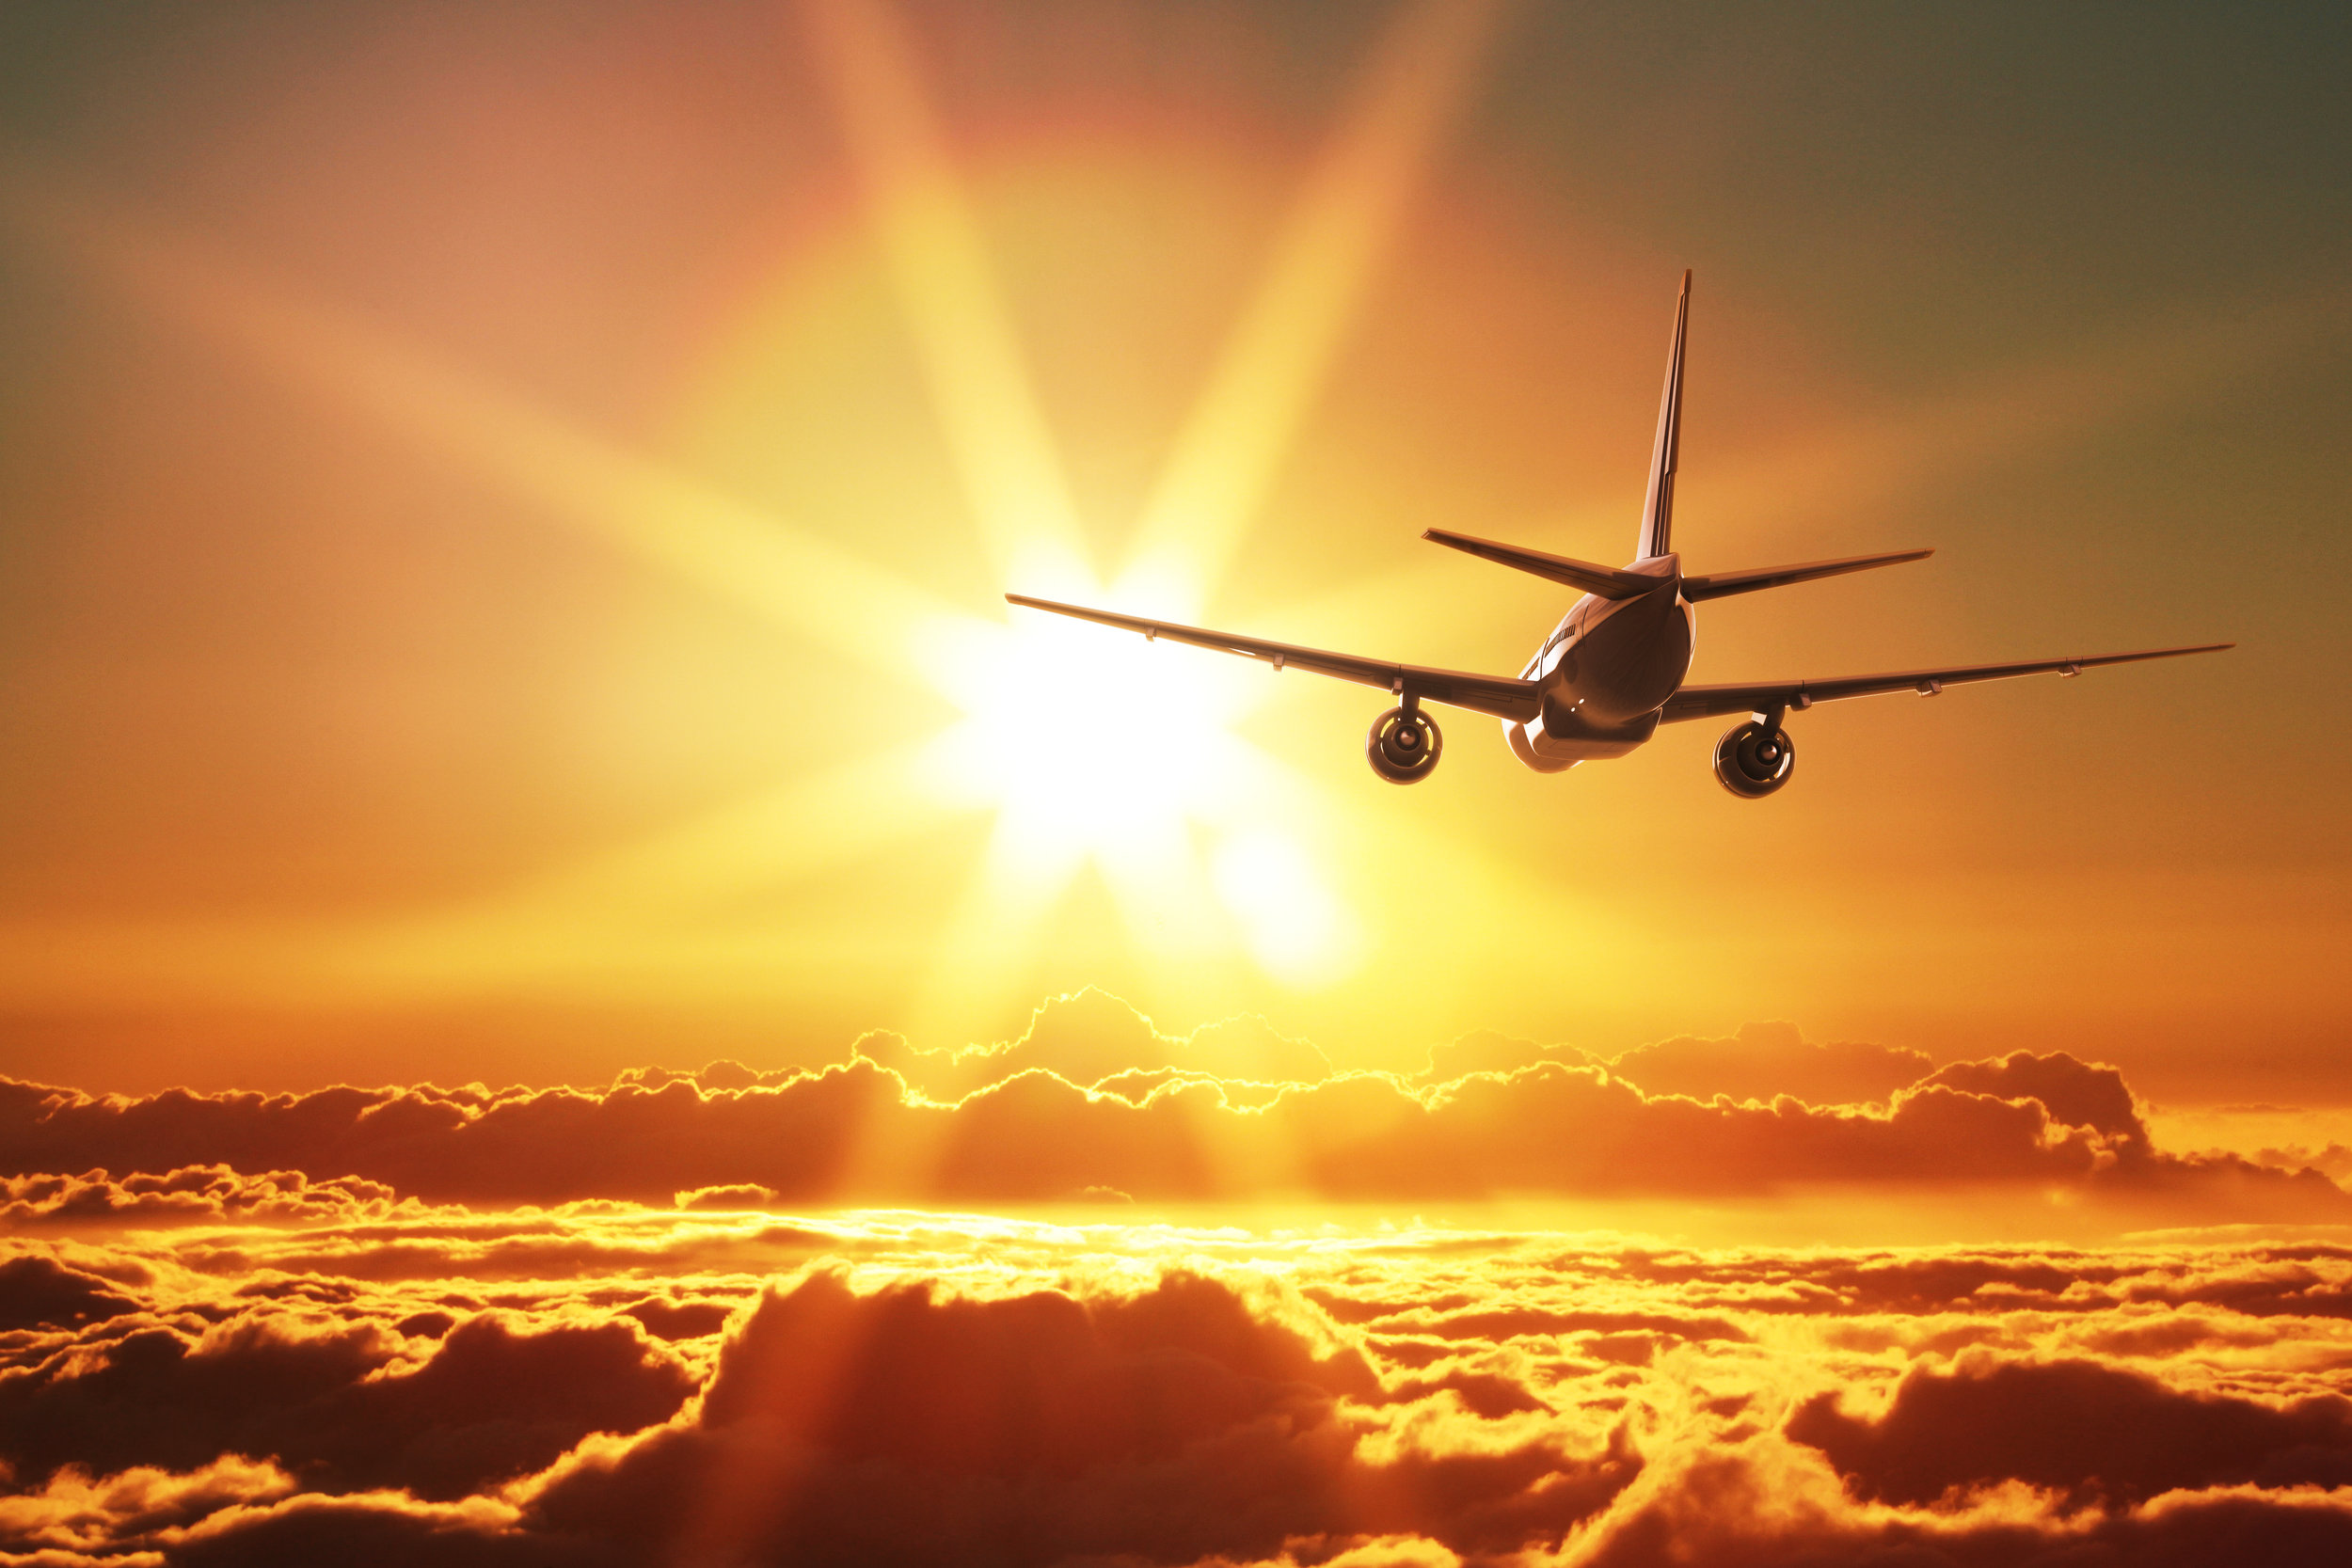 May 25: Depart for home - Your flight will depart around 11:35pm (local time) - allowing for some last minute exploration to your favorite spots (or the locations you couldn't get to the days prior). You will arrive in CMH around 11:55am on May 26.